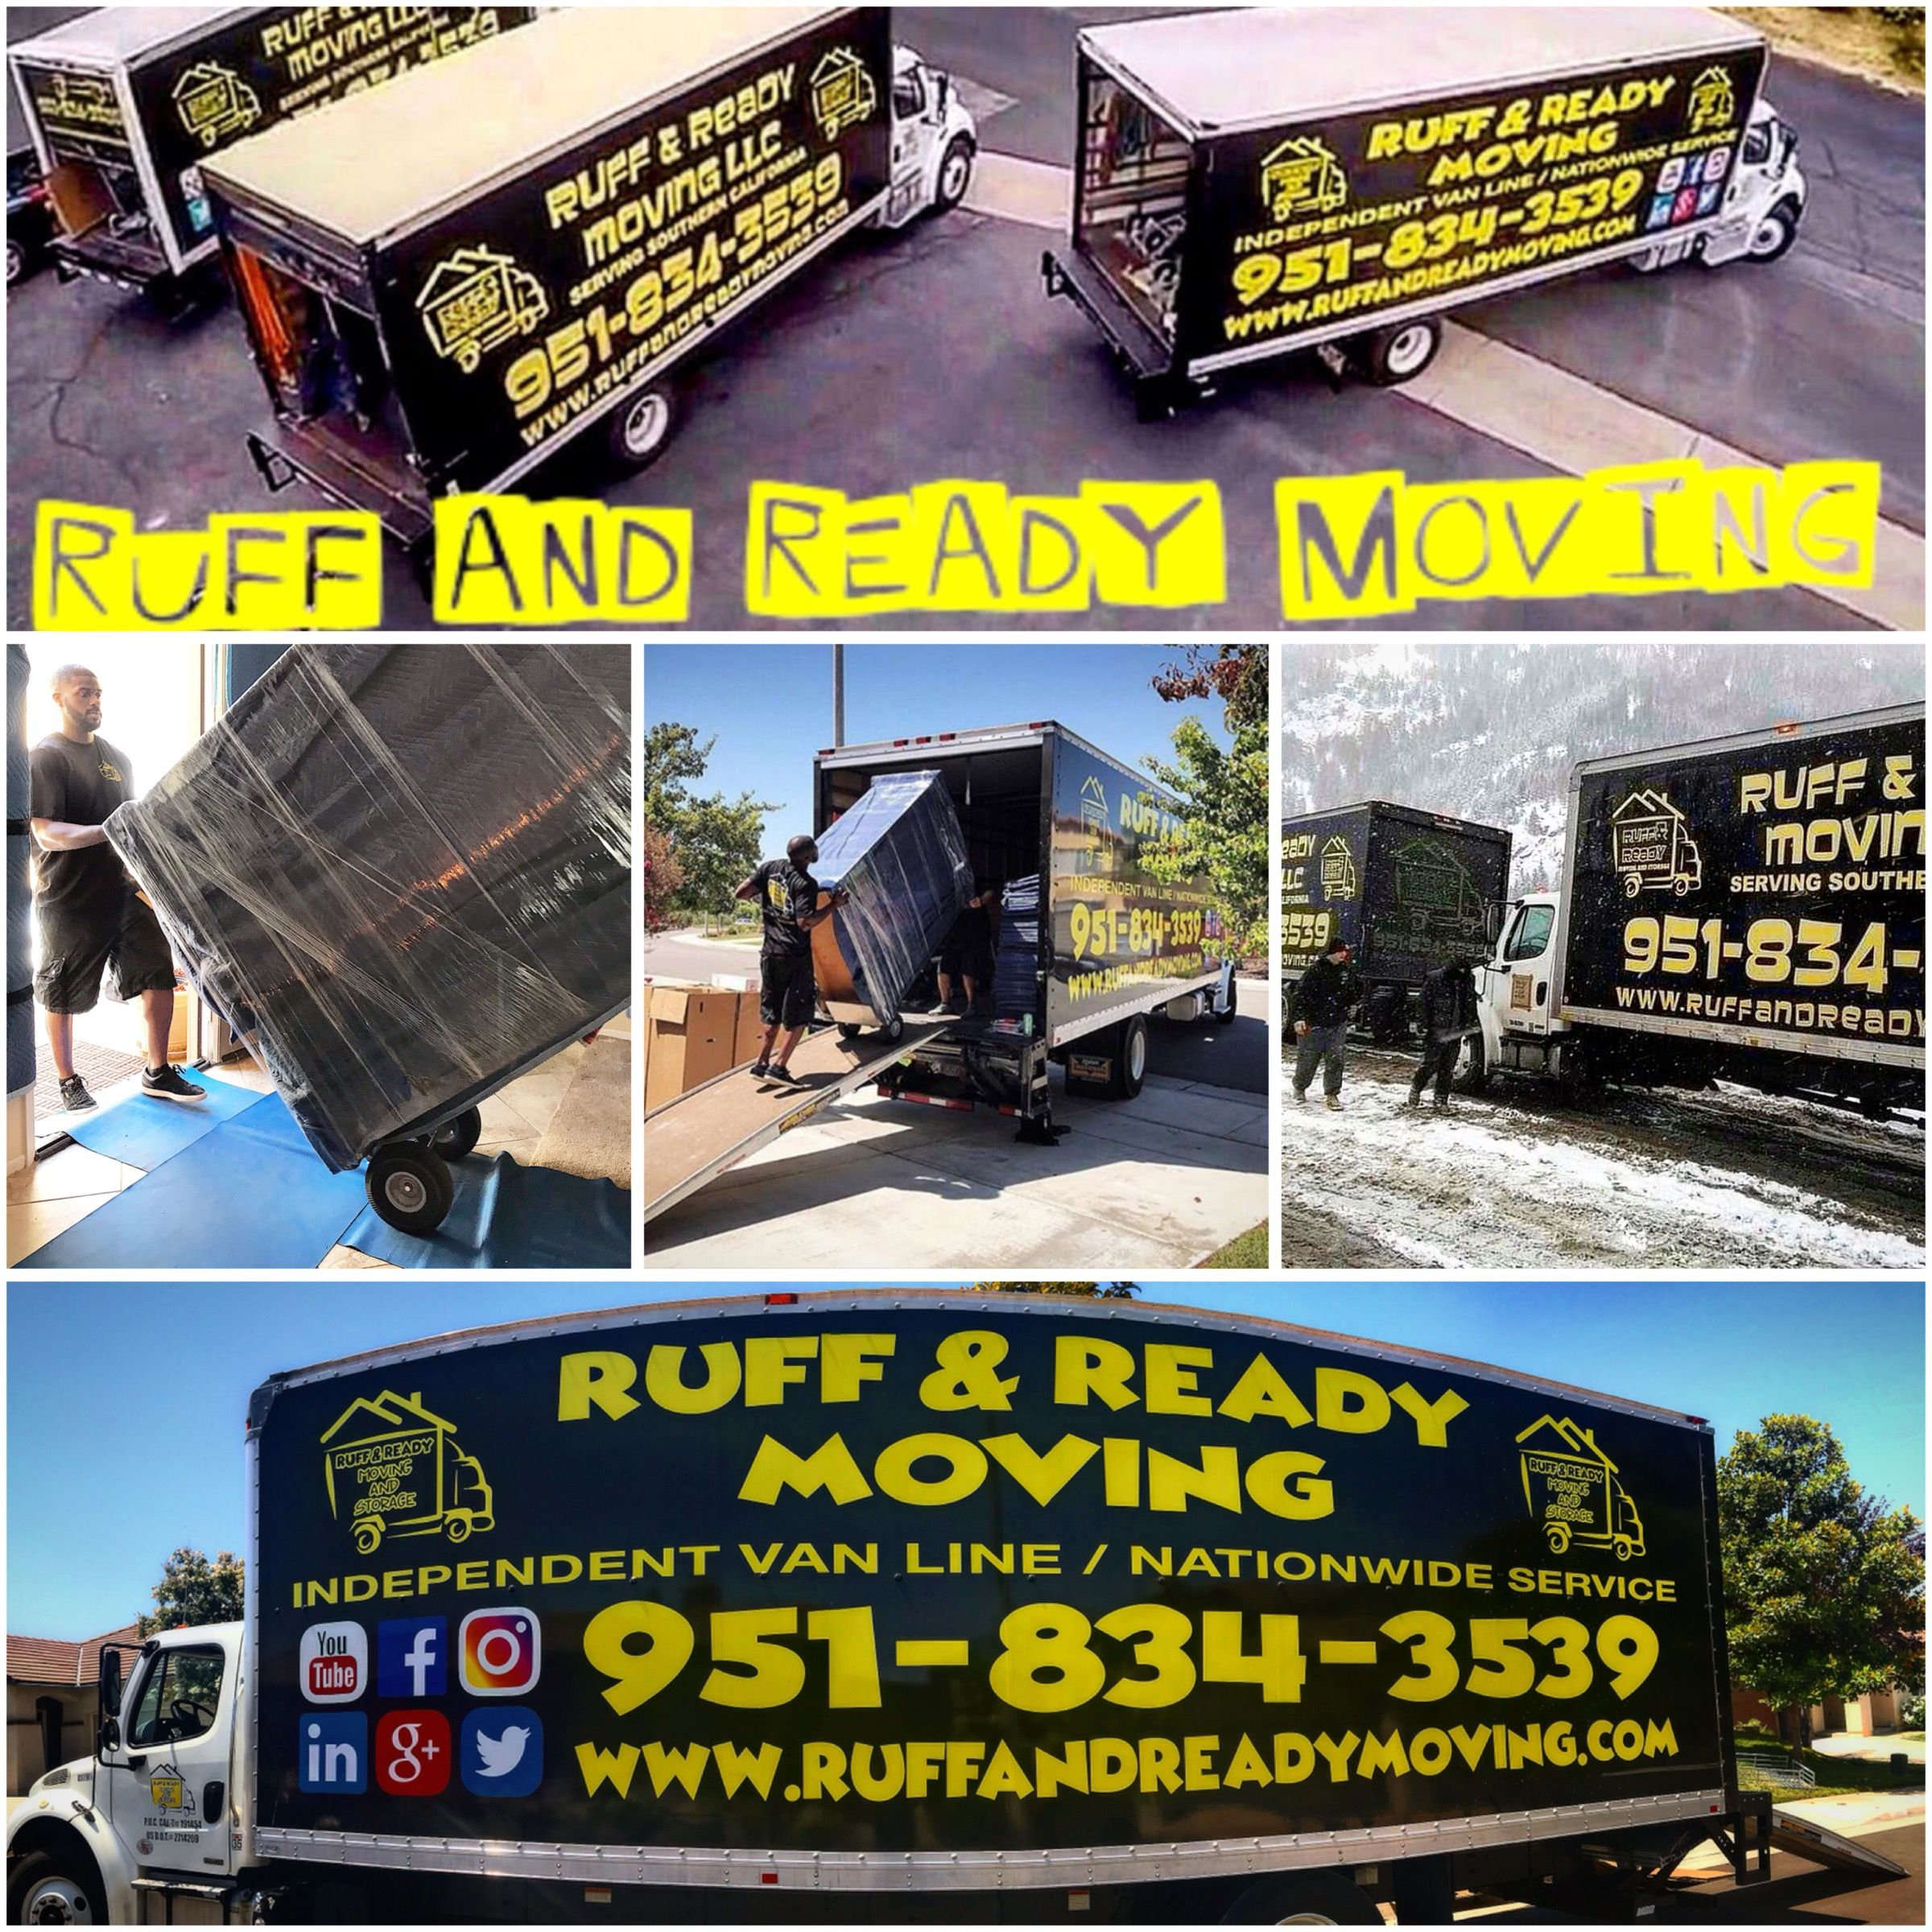 Ruff And Ready Moving Is Always On The Go Seven Days A Week 365 Year We Are Here To Help You From Start Finish Will Walk